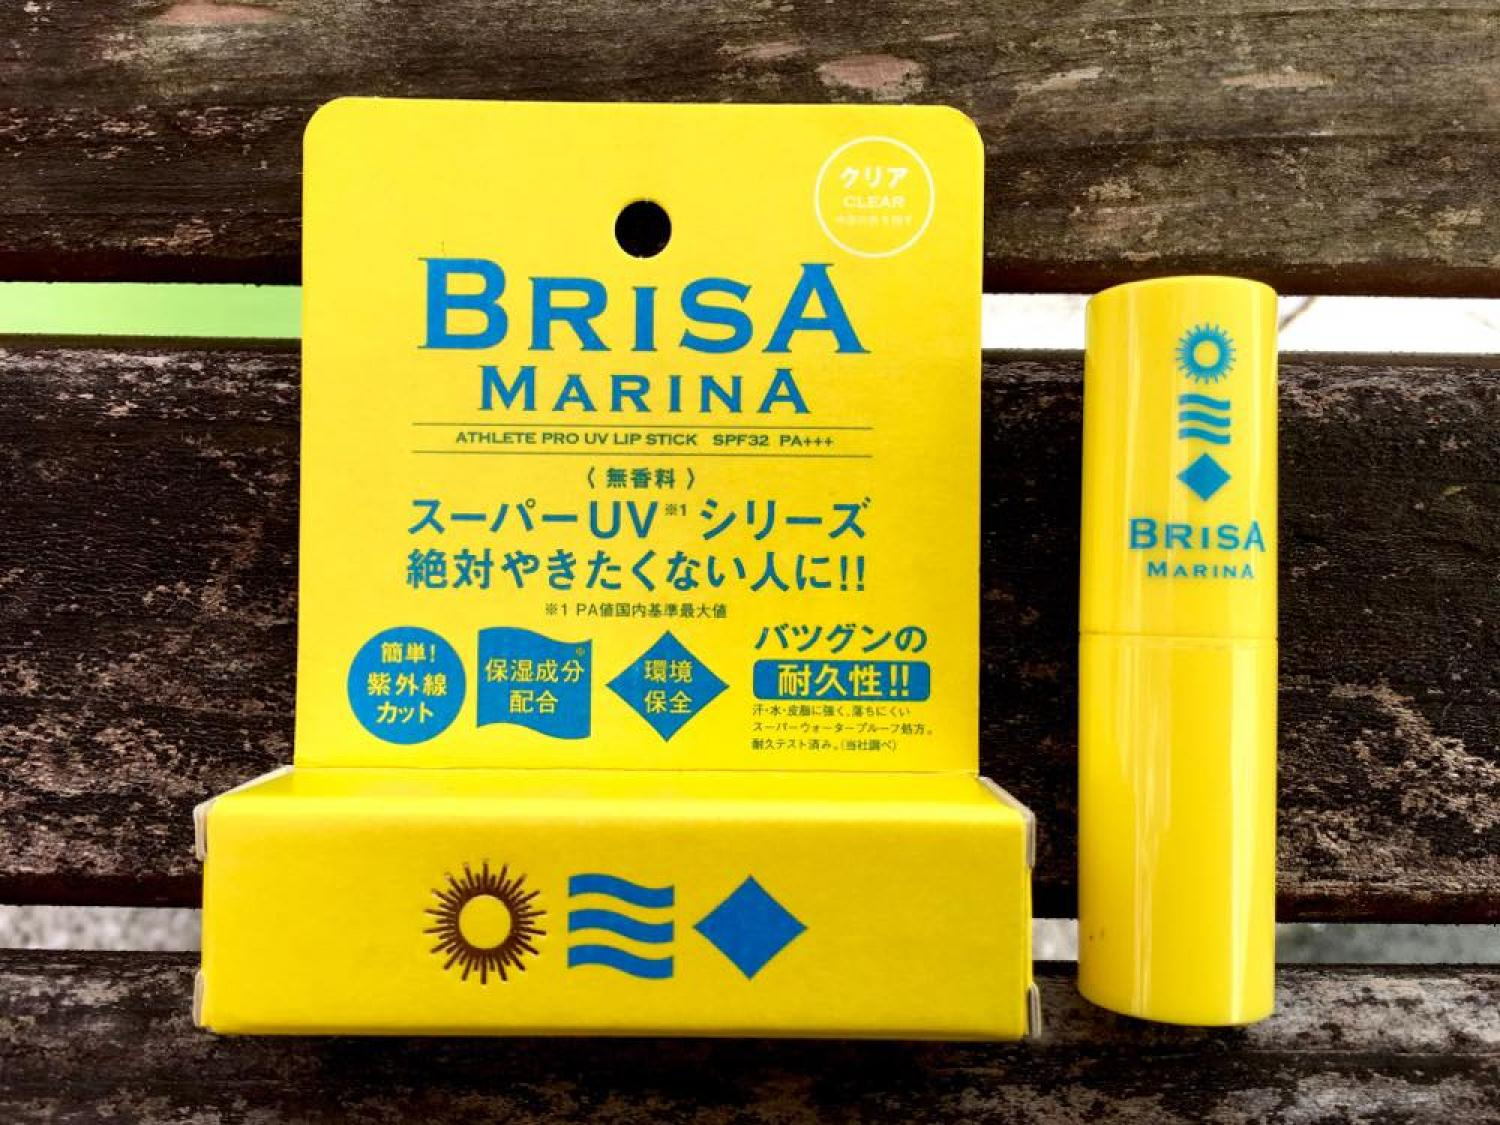 BRISA MARINA ATHLETE PRO UV LIP STICK CLEAR